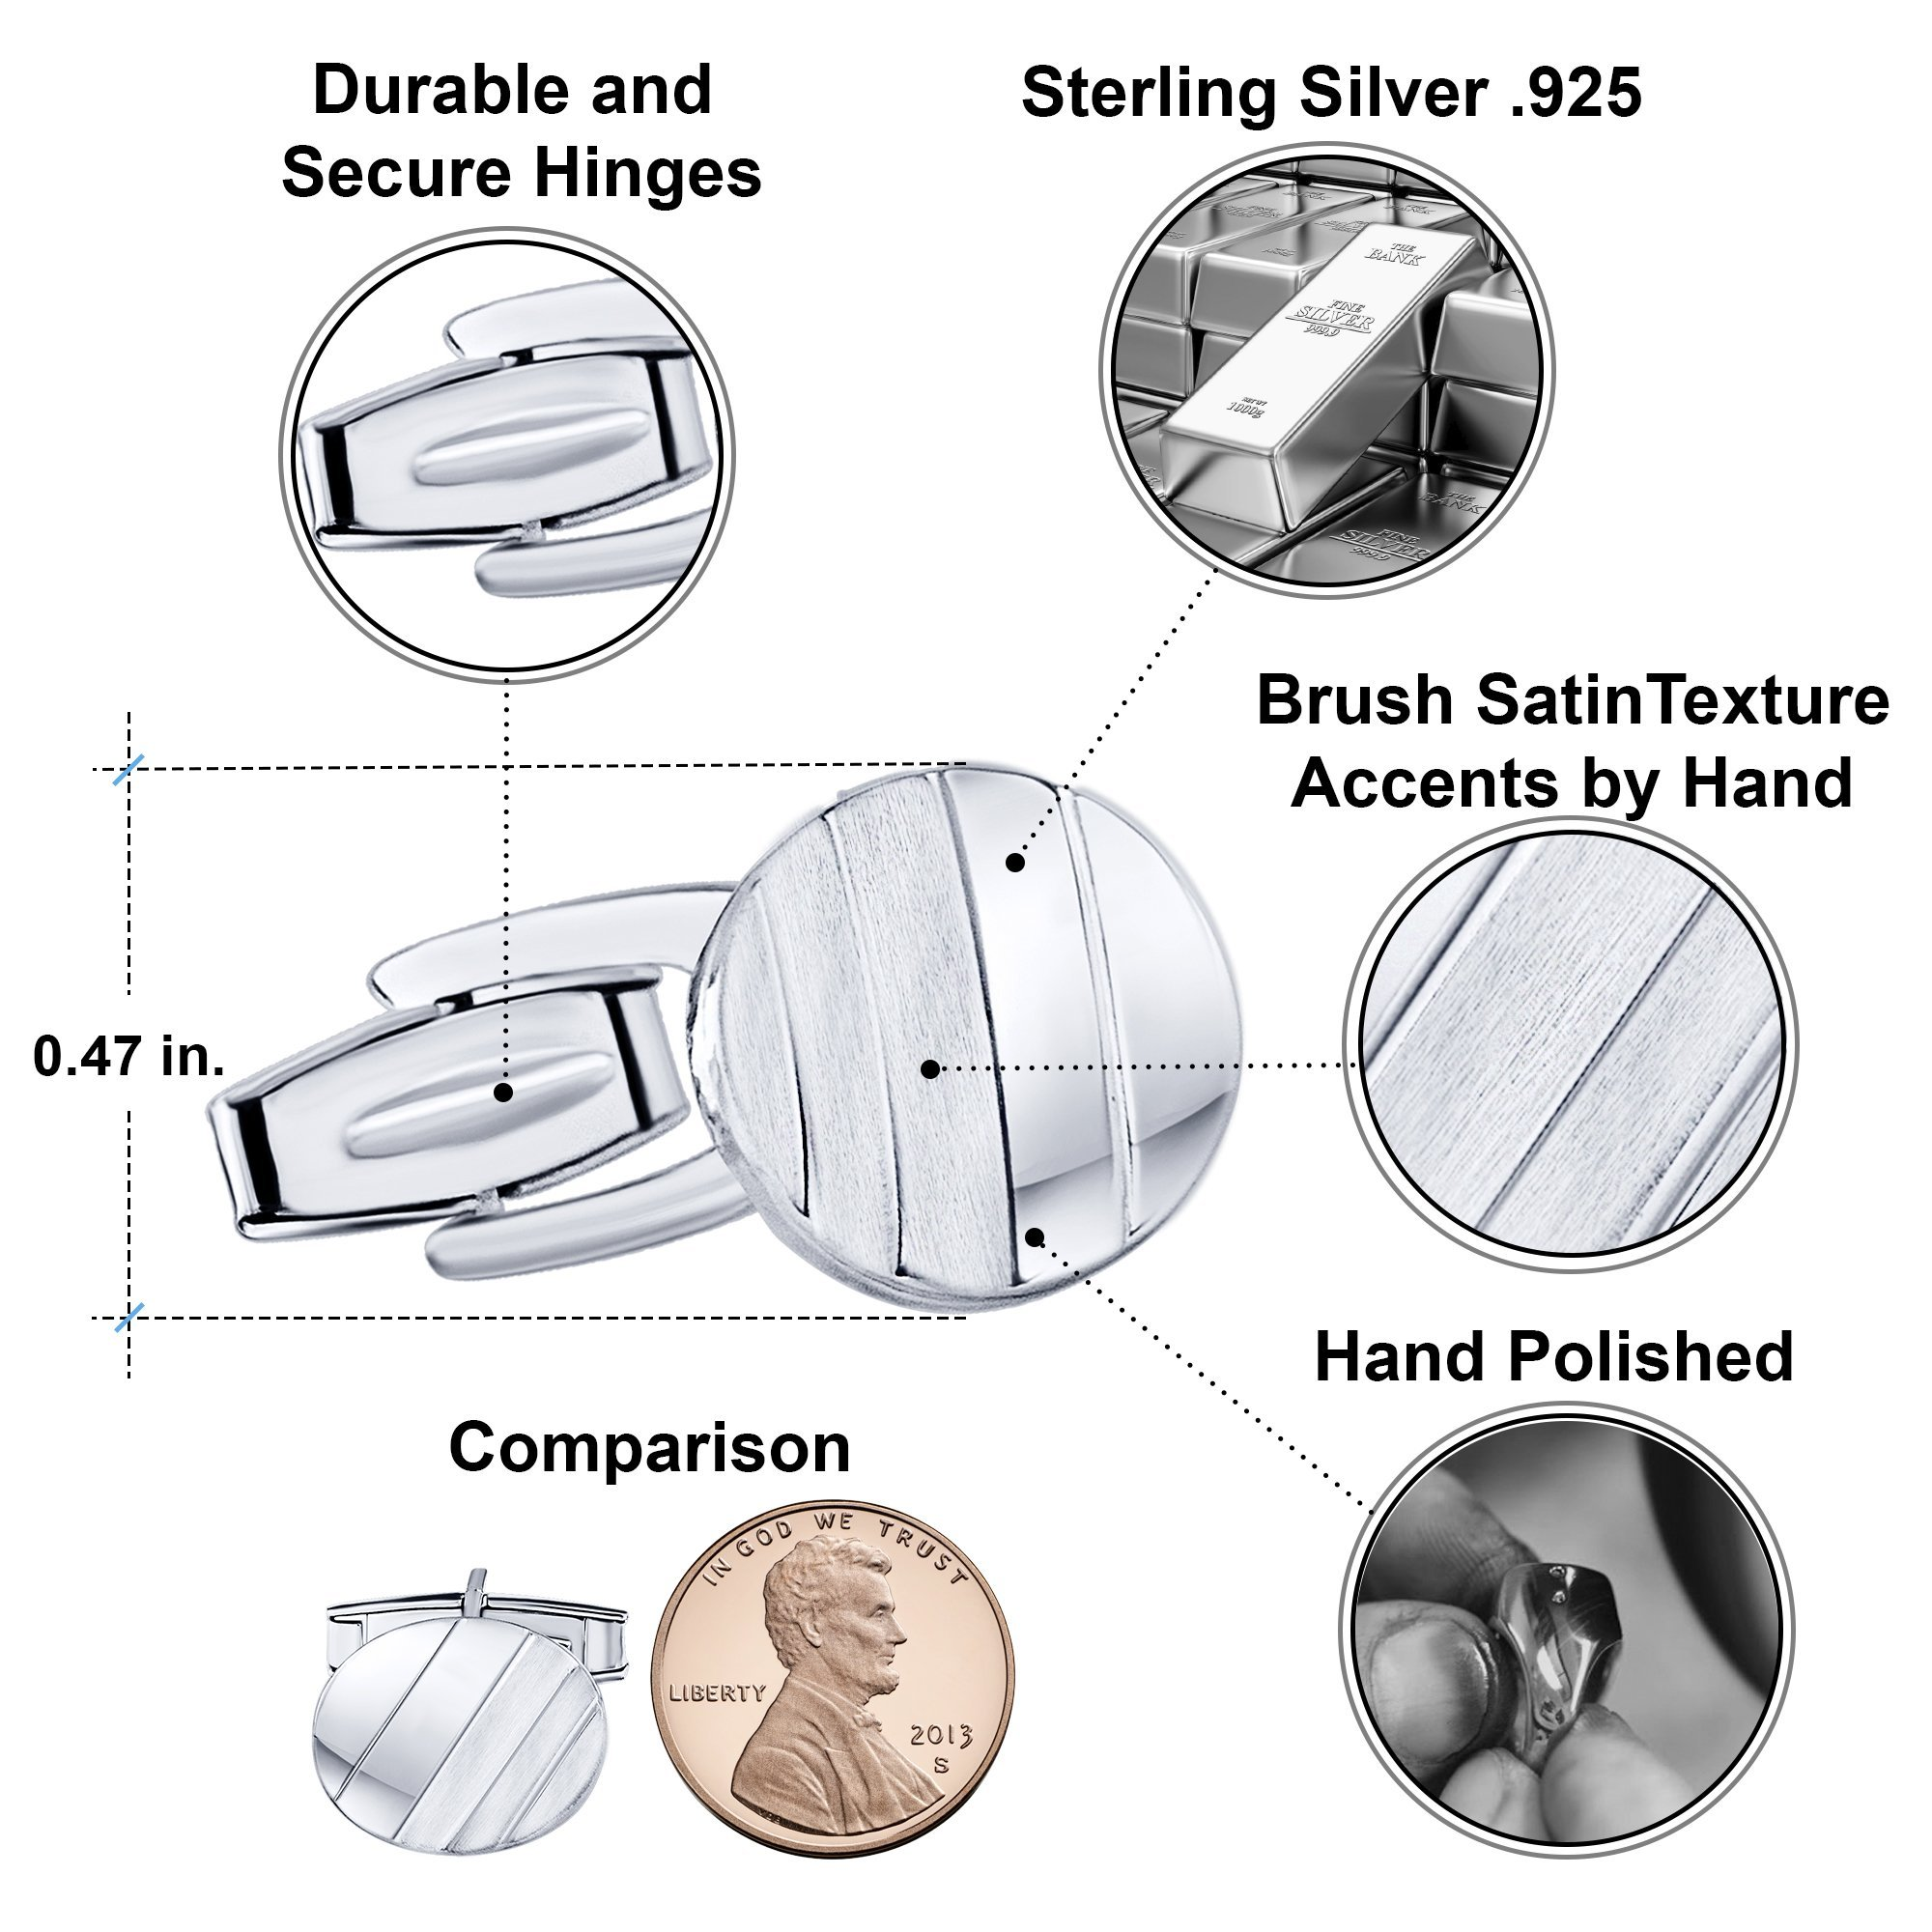 Men's Sterling Silver .925 Oval Striped Design Cufflinks with Satin Finish. Made In Italy. By Sterling Manufacturers by Sterling Manufacturers (Image #4)